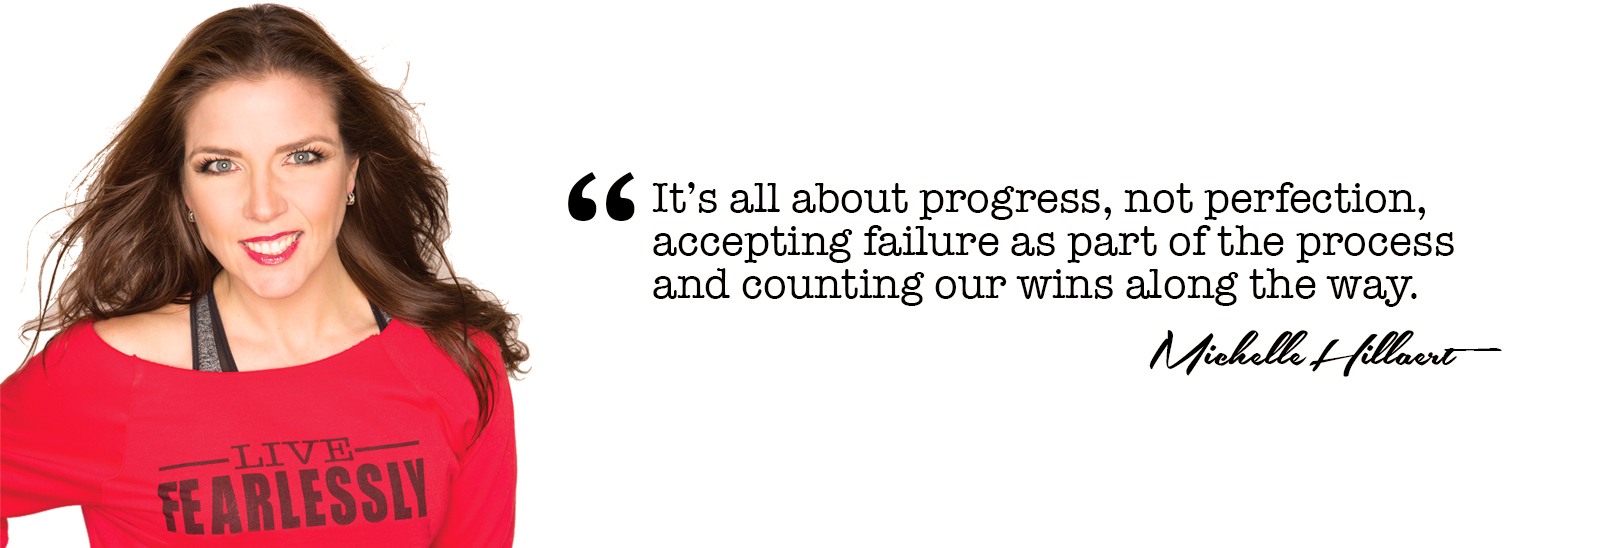 It's all about progress, not perfection, accepting failure as part of the process and counting our wins along the way.